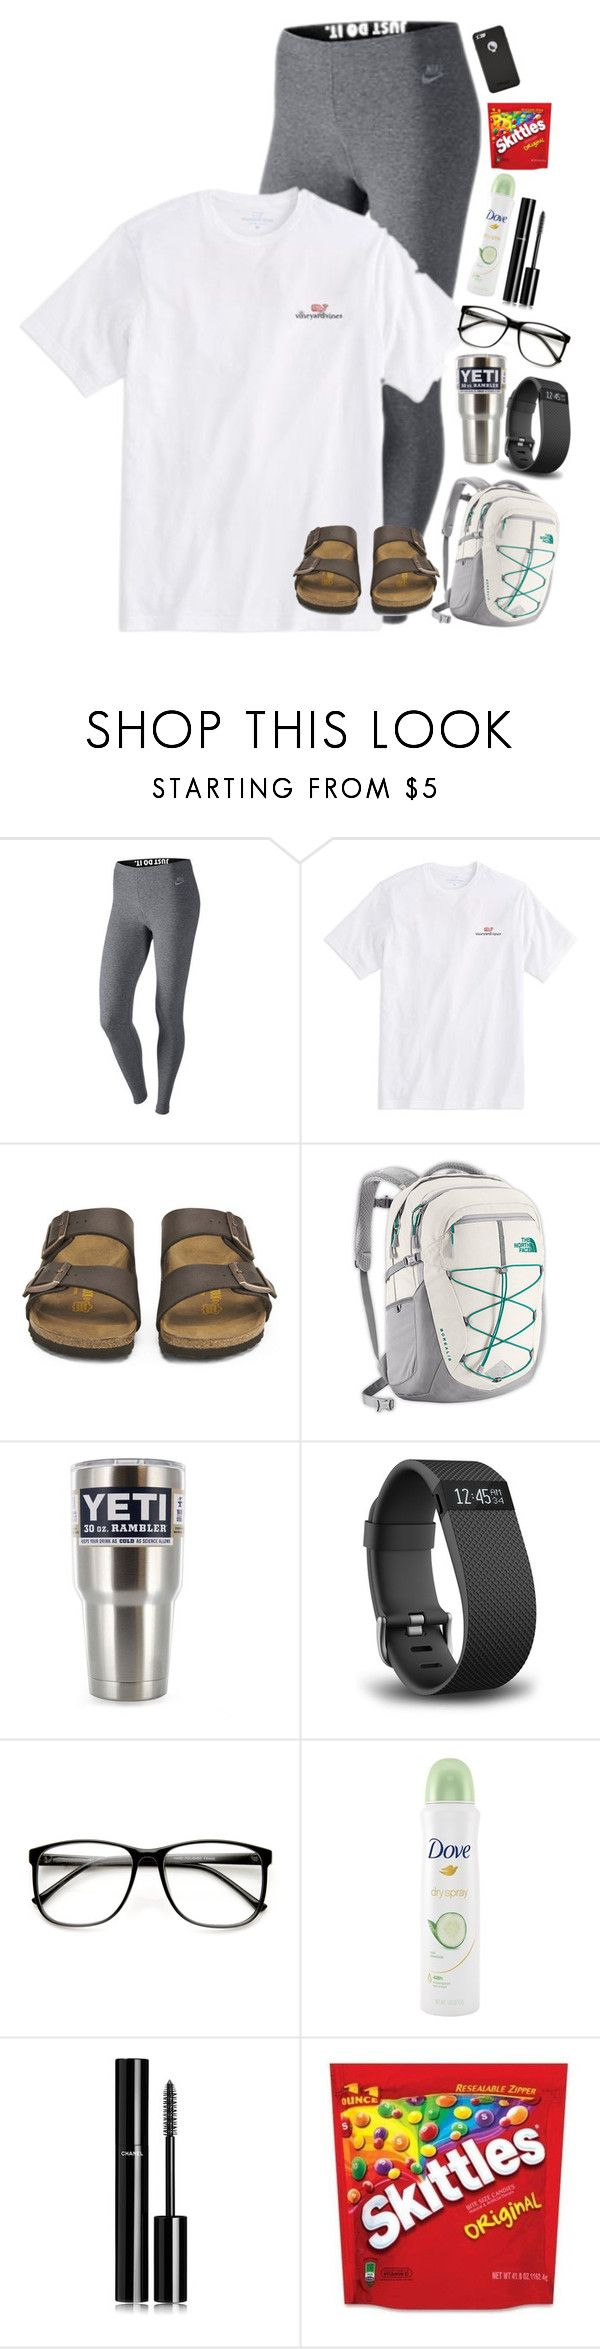 """""""Recreating my old sets!"""" by lacrosse-19 ❤ liked on Polyvore featuring NIKE, Vineyard Vines, Birkenstock, The North Face, Fitbit, ZeroUV, Dove and Chanel"""